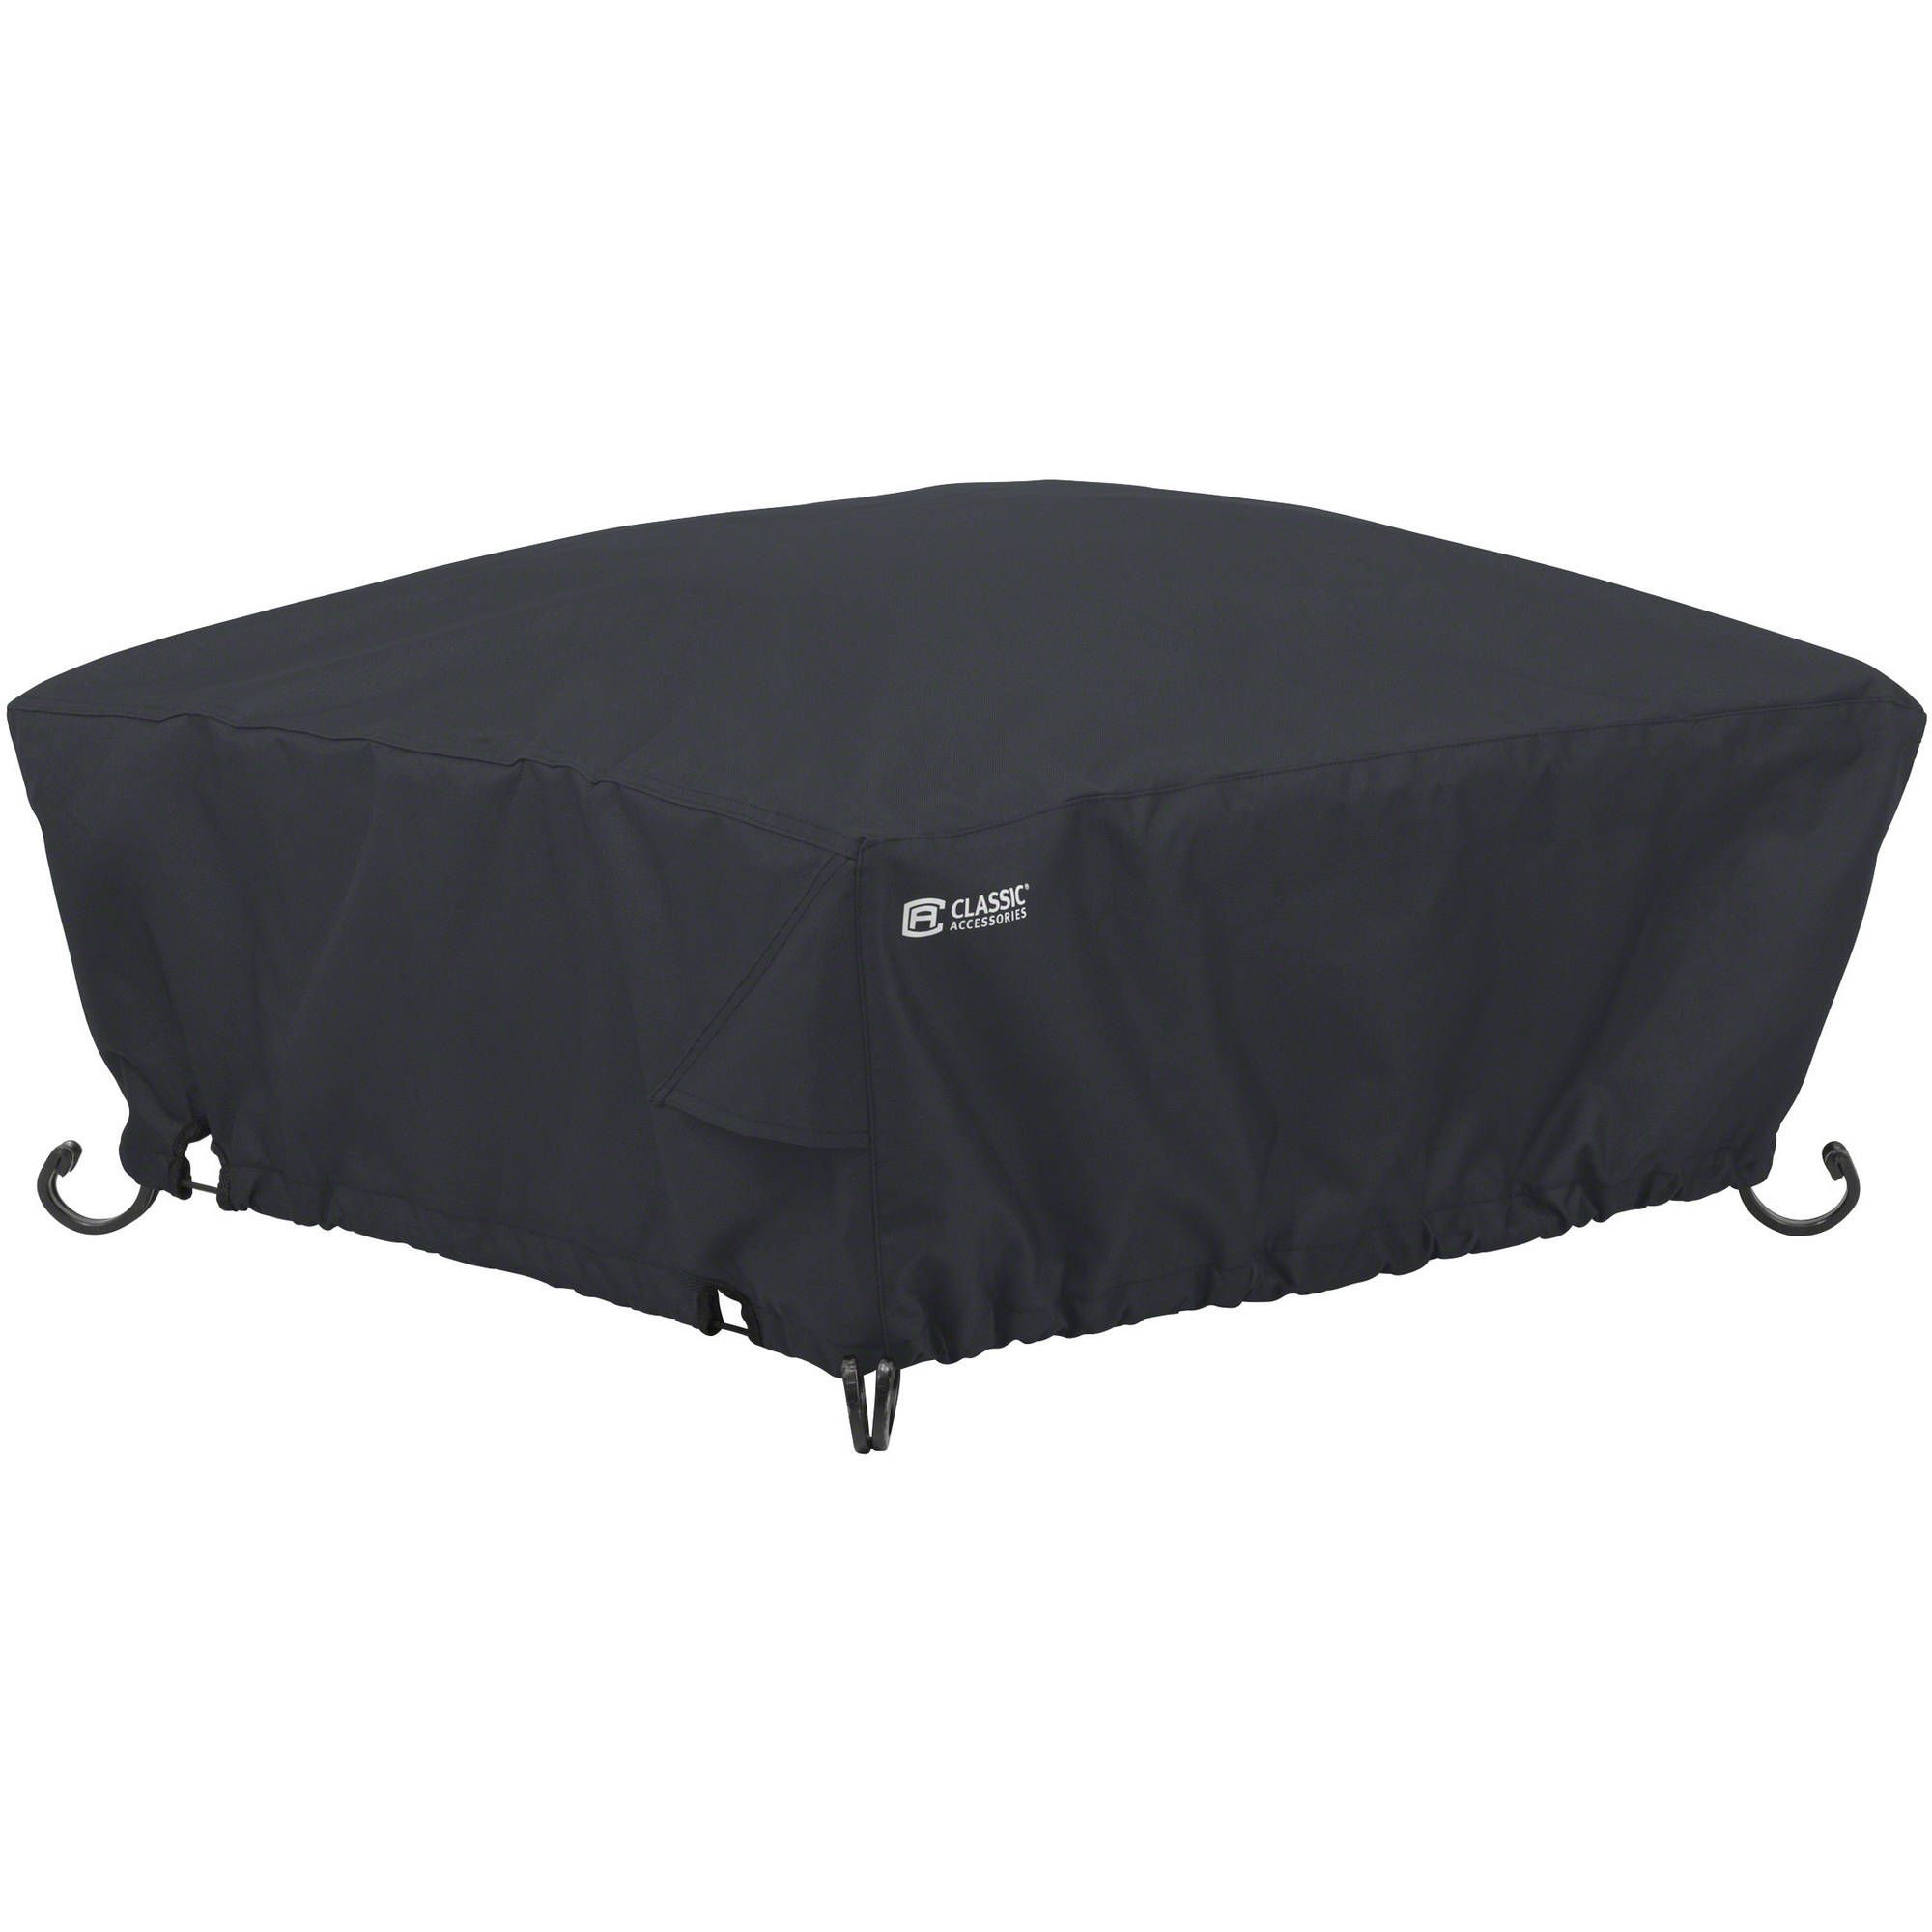 Classic Accessories Water Resistant 30 Inch Square Fire Pit Cover Walmart Com In 2020 Square Fire Pit Cover Round Fire Pit Cover Fire Pit Cover